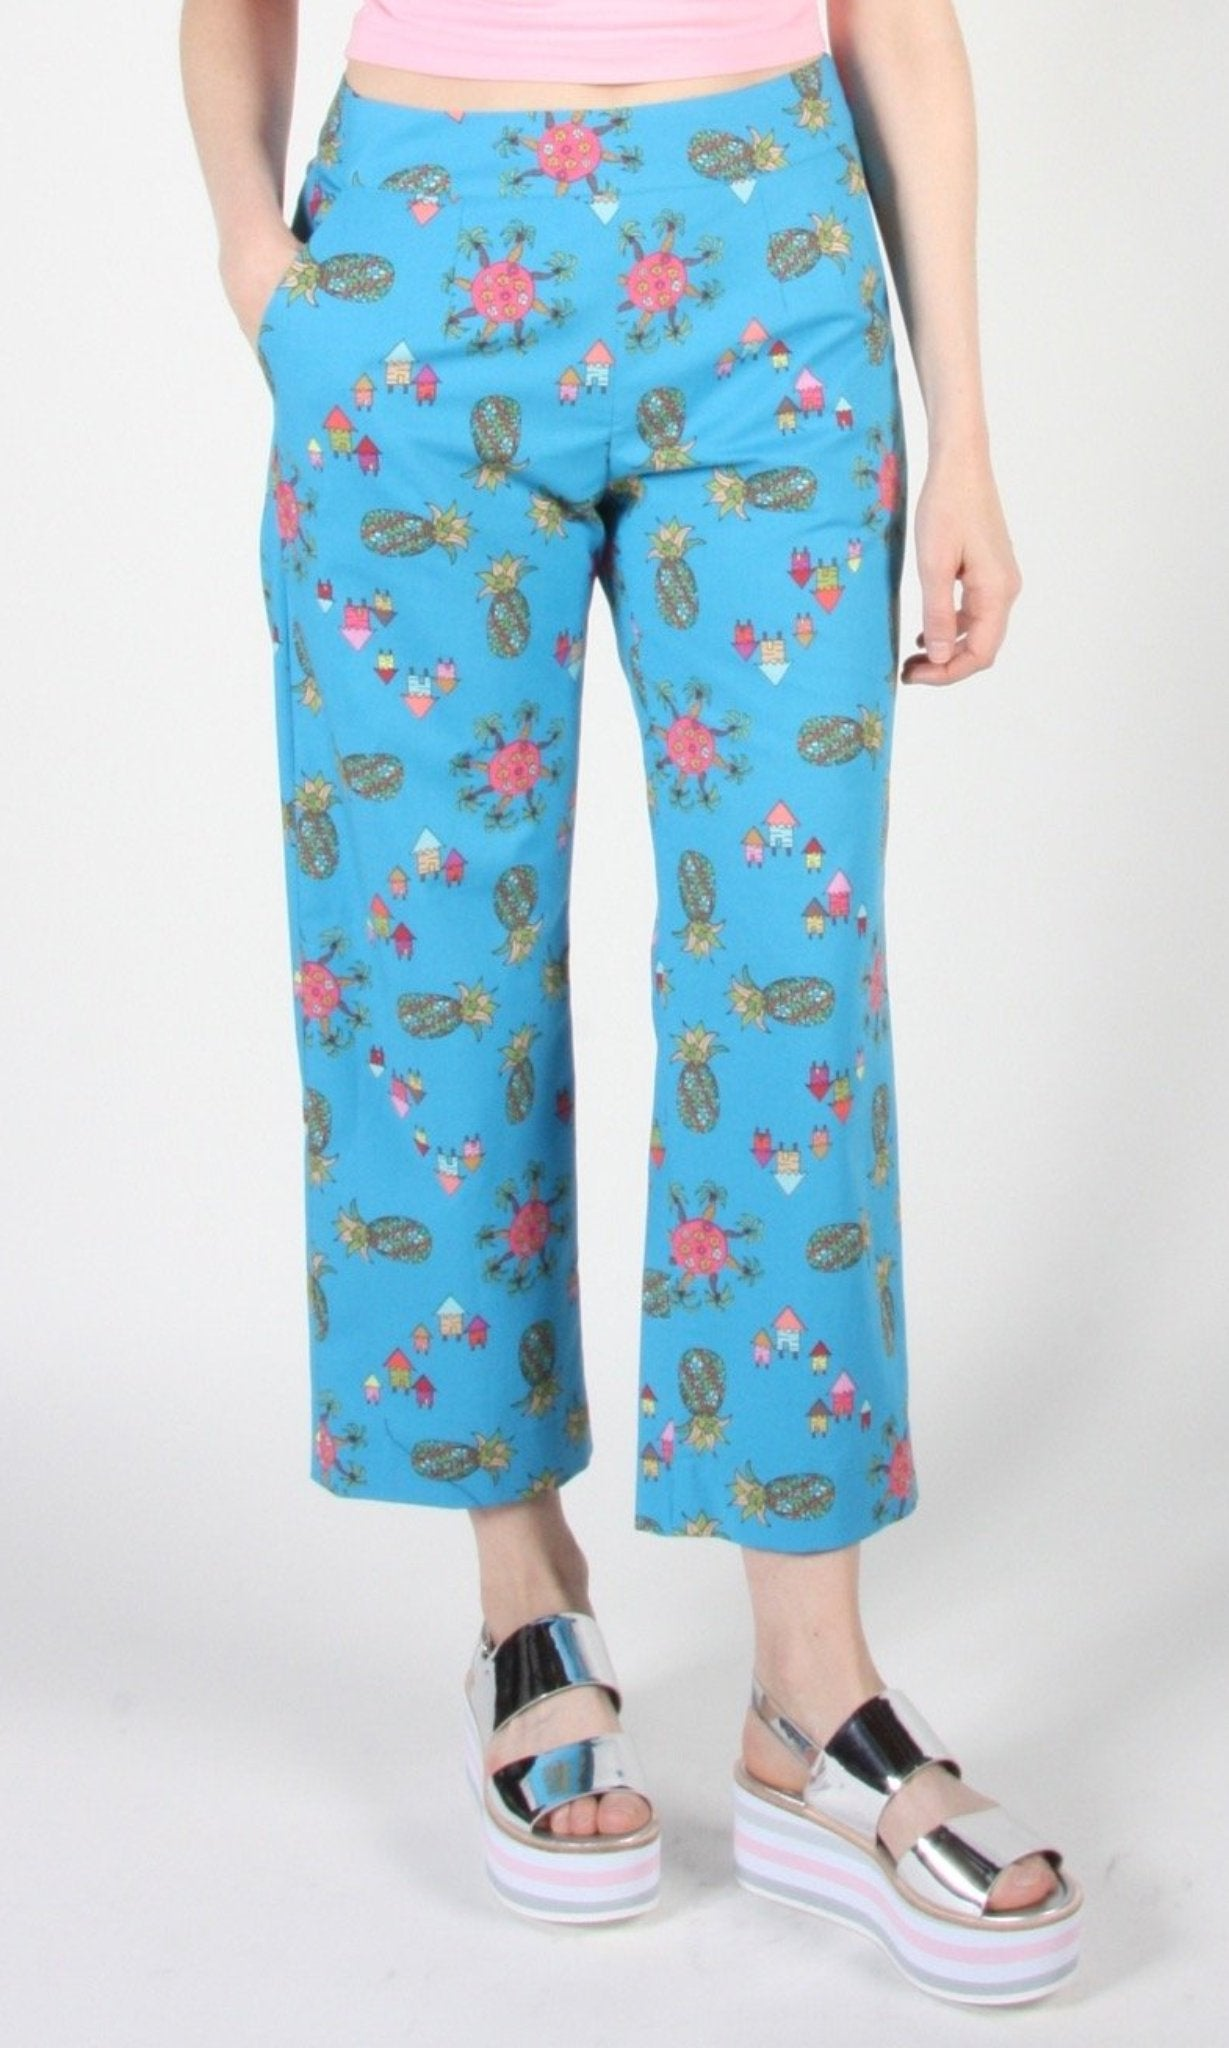 Tiecel Pant - Blue Pineapple Party